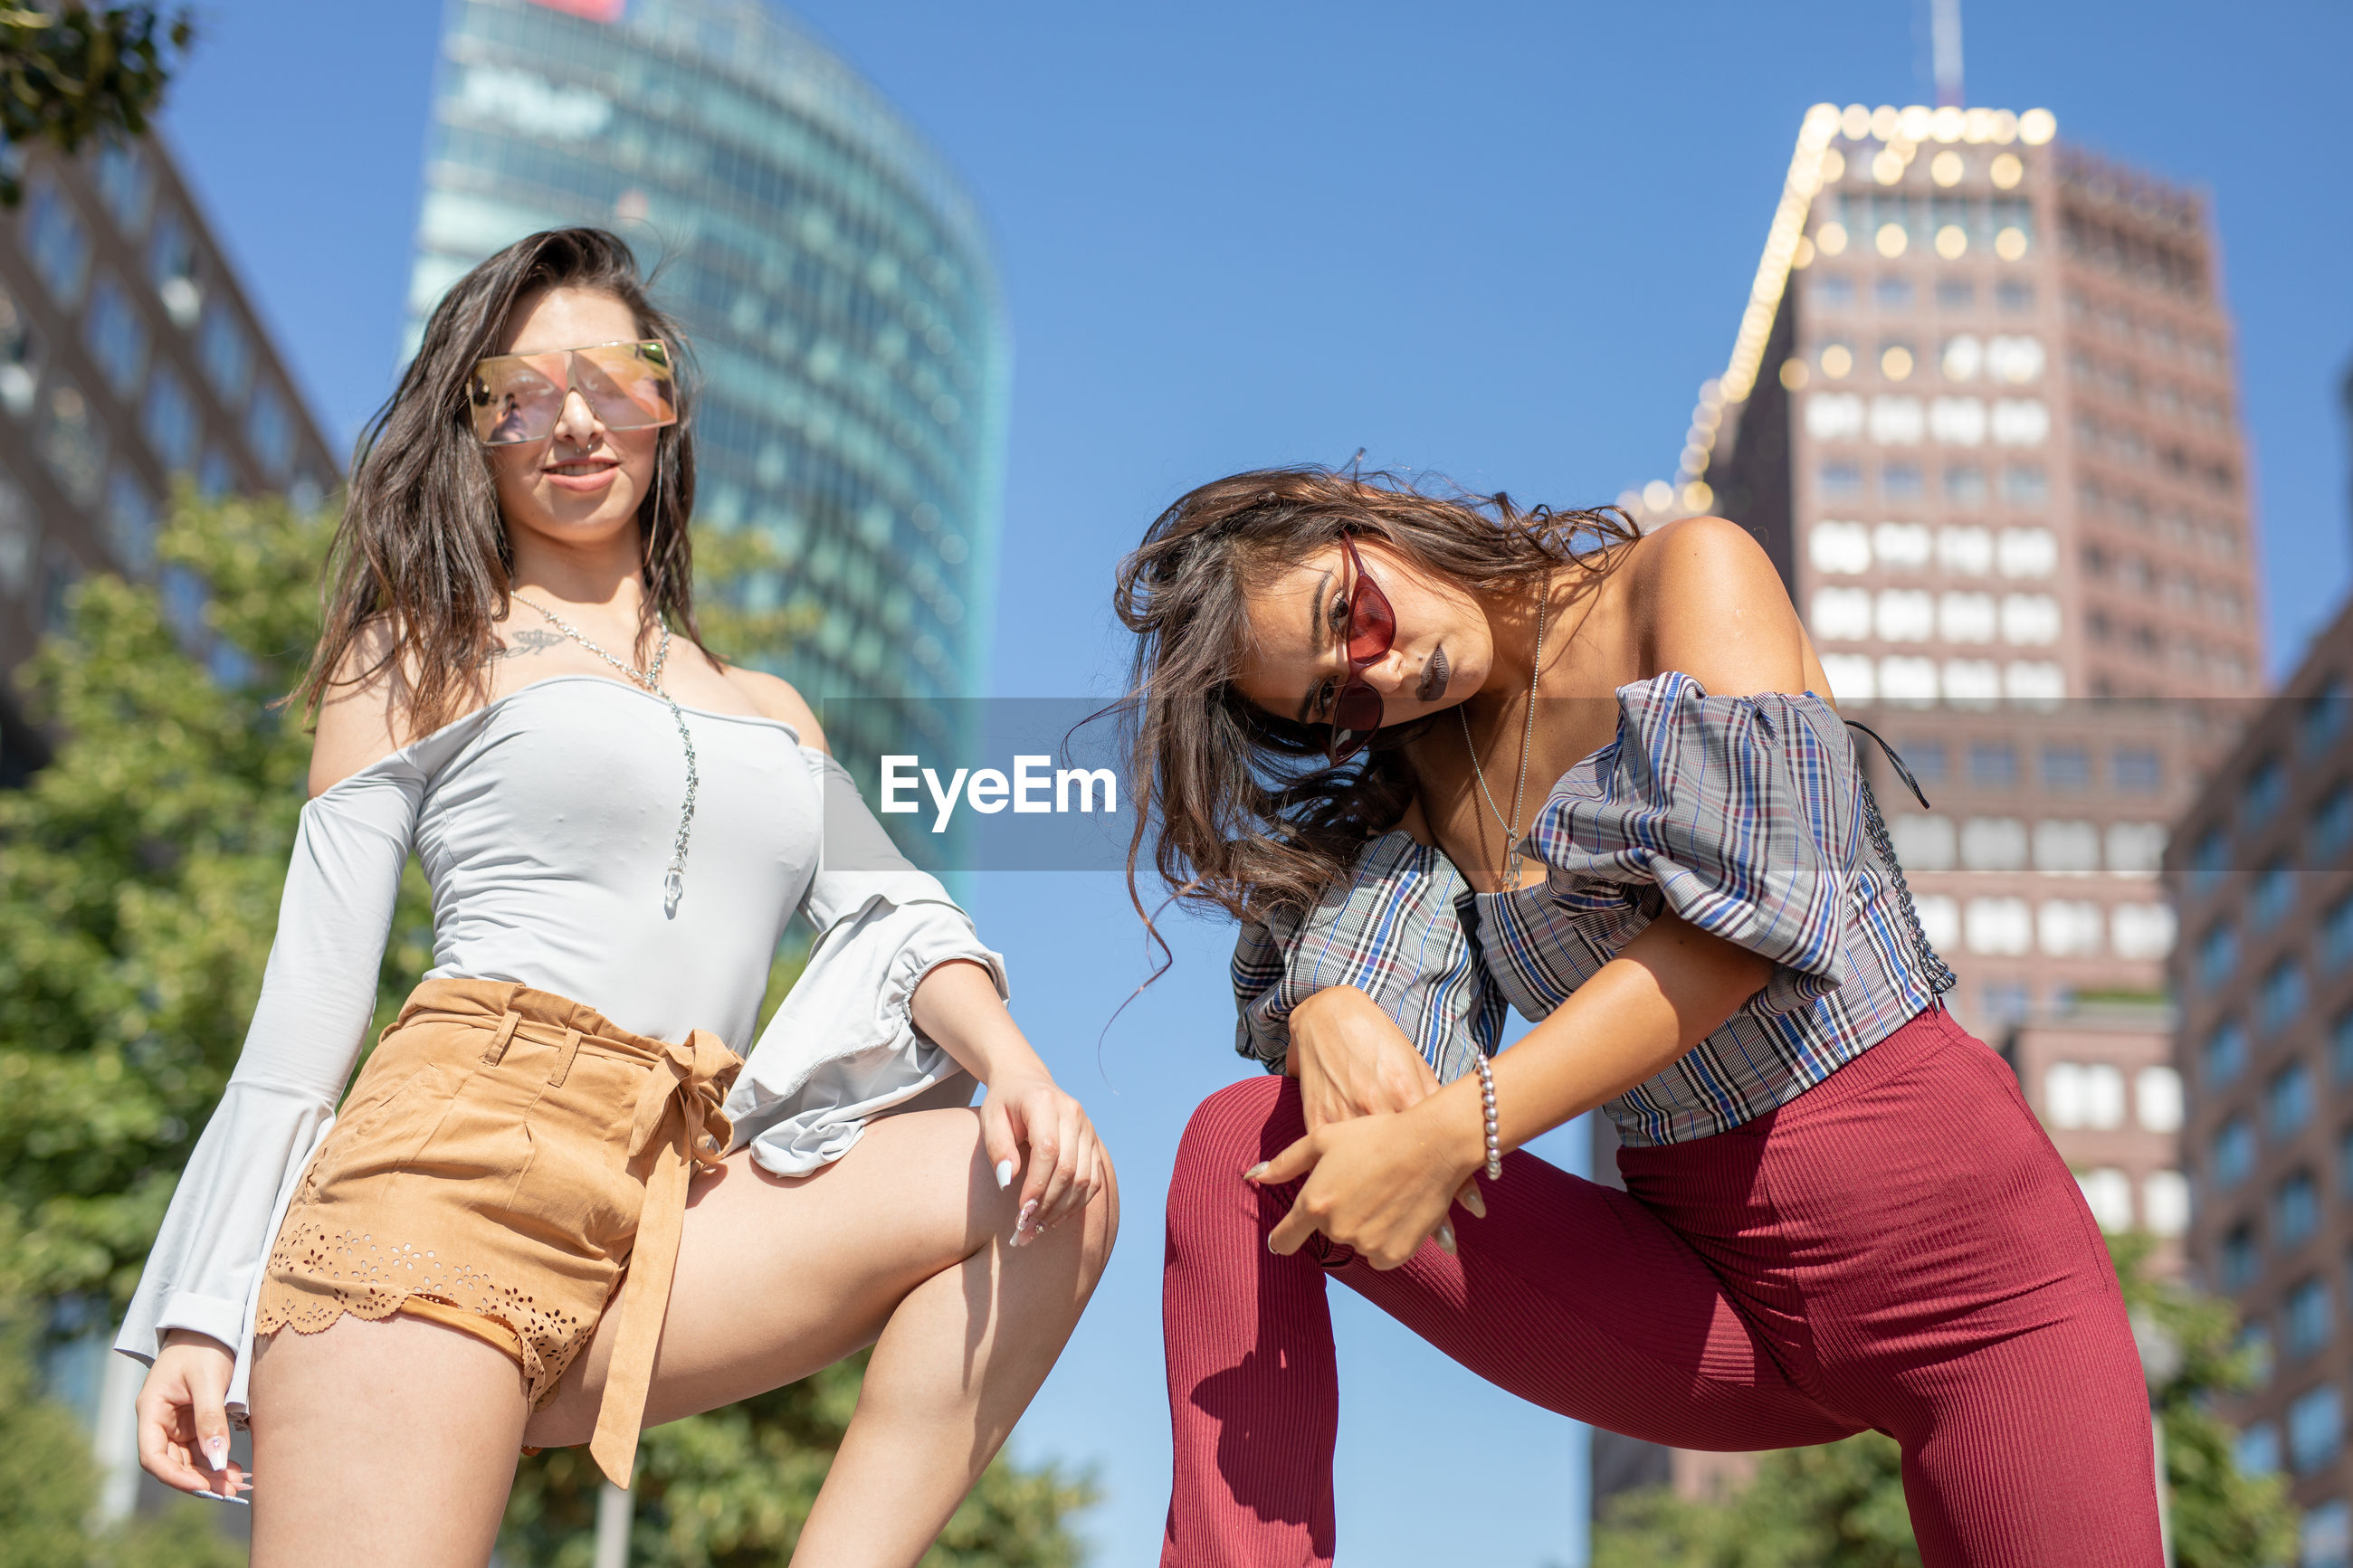 Portrait of young women standing against buildings and sky